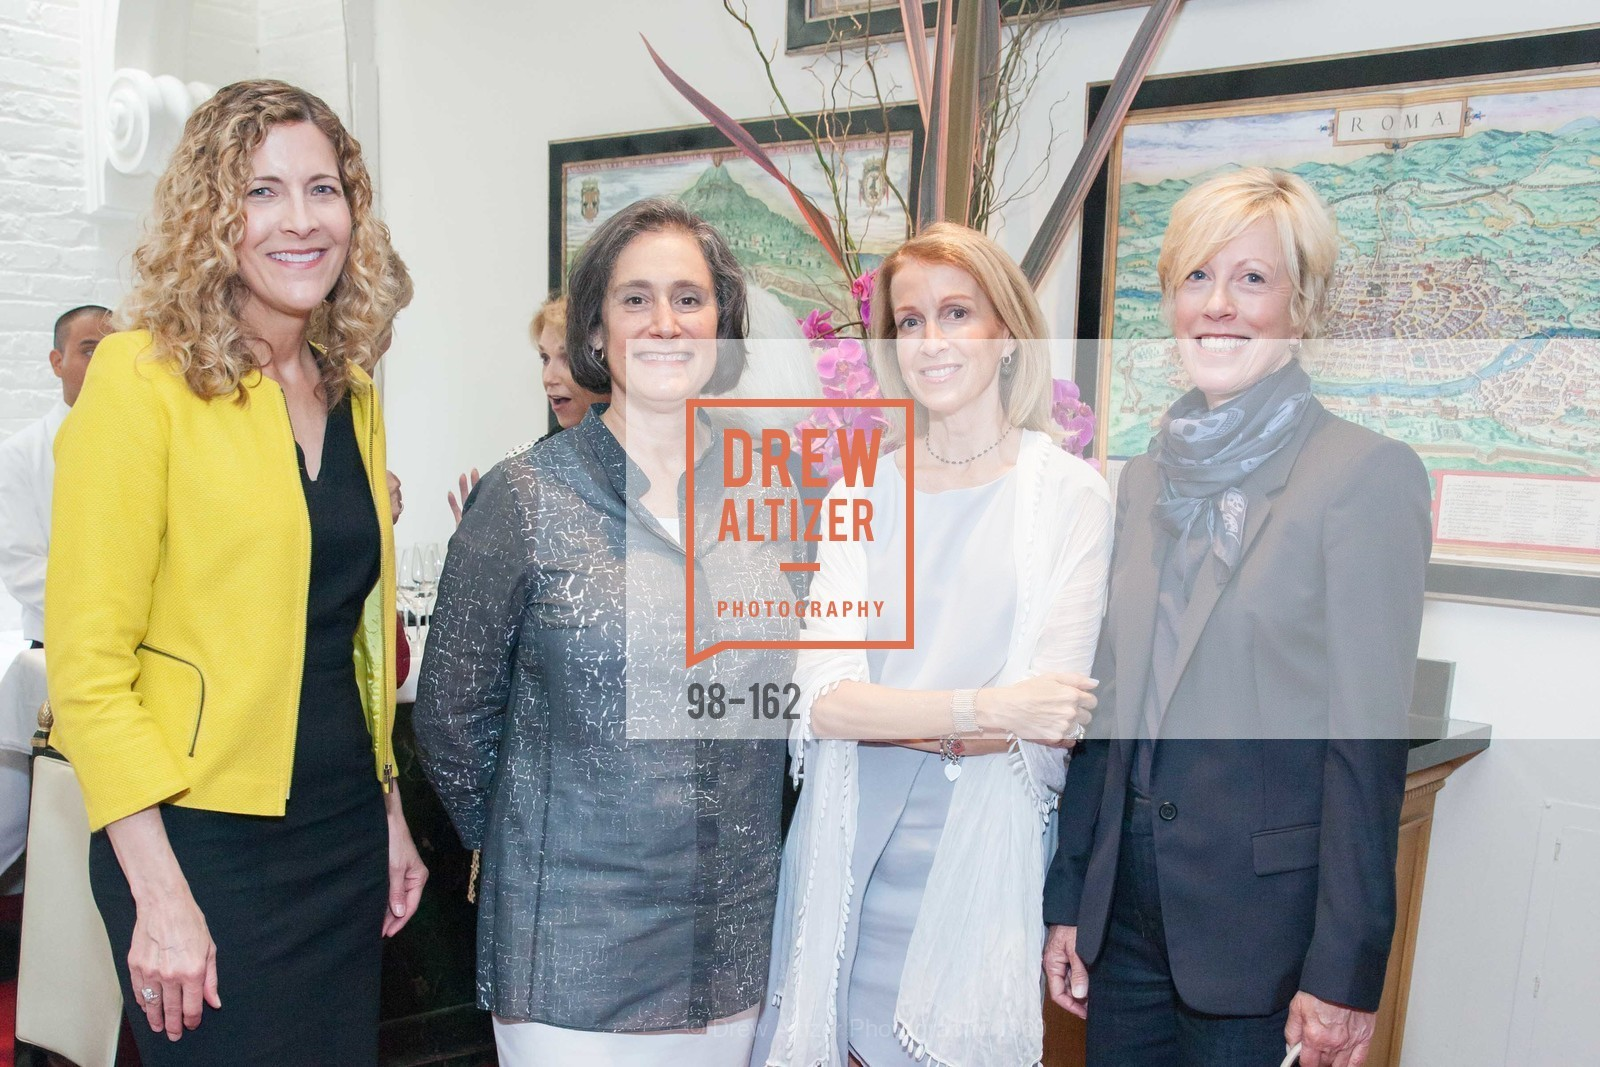 Joanne Northrup, Susan Sterling, Angela McConnell, Wanda Kownacki, National Museum of Women in the Arts Luncheon Hosted by Lorna Meyer Calas, Villa Taverna. 27 Hotaling Place, June 14th, 2015,Drew Altizer, Drew Altizer Photography, full-service event agency, private events, San Francisco photographer, photographer California